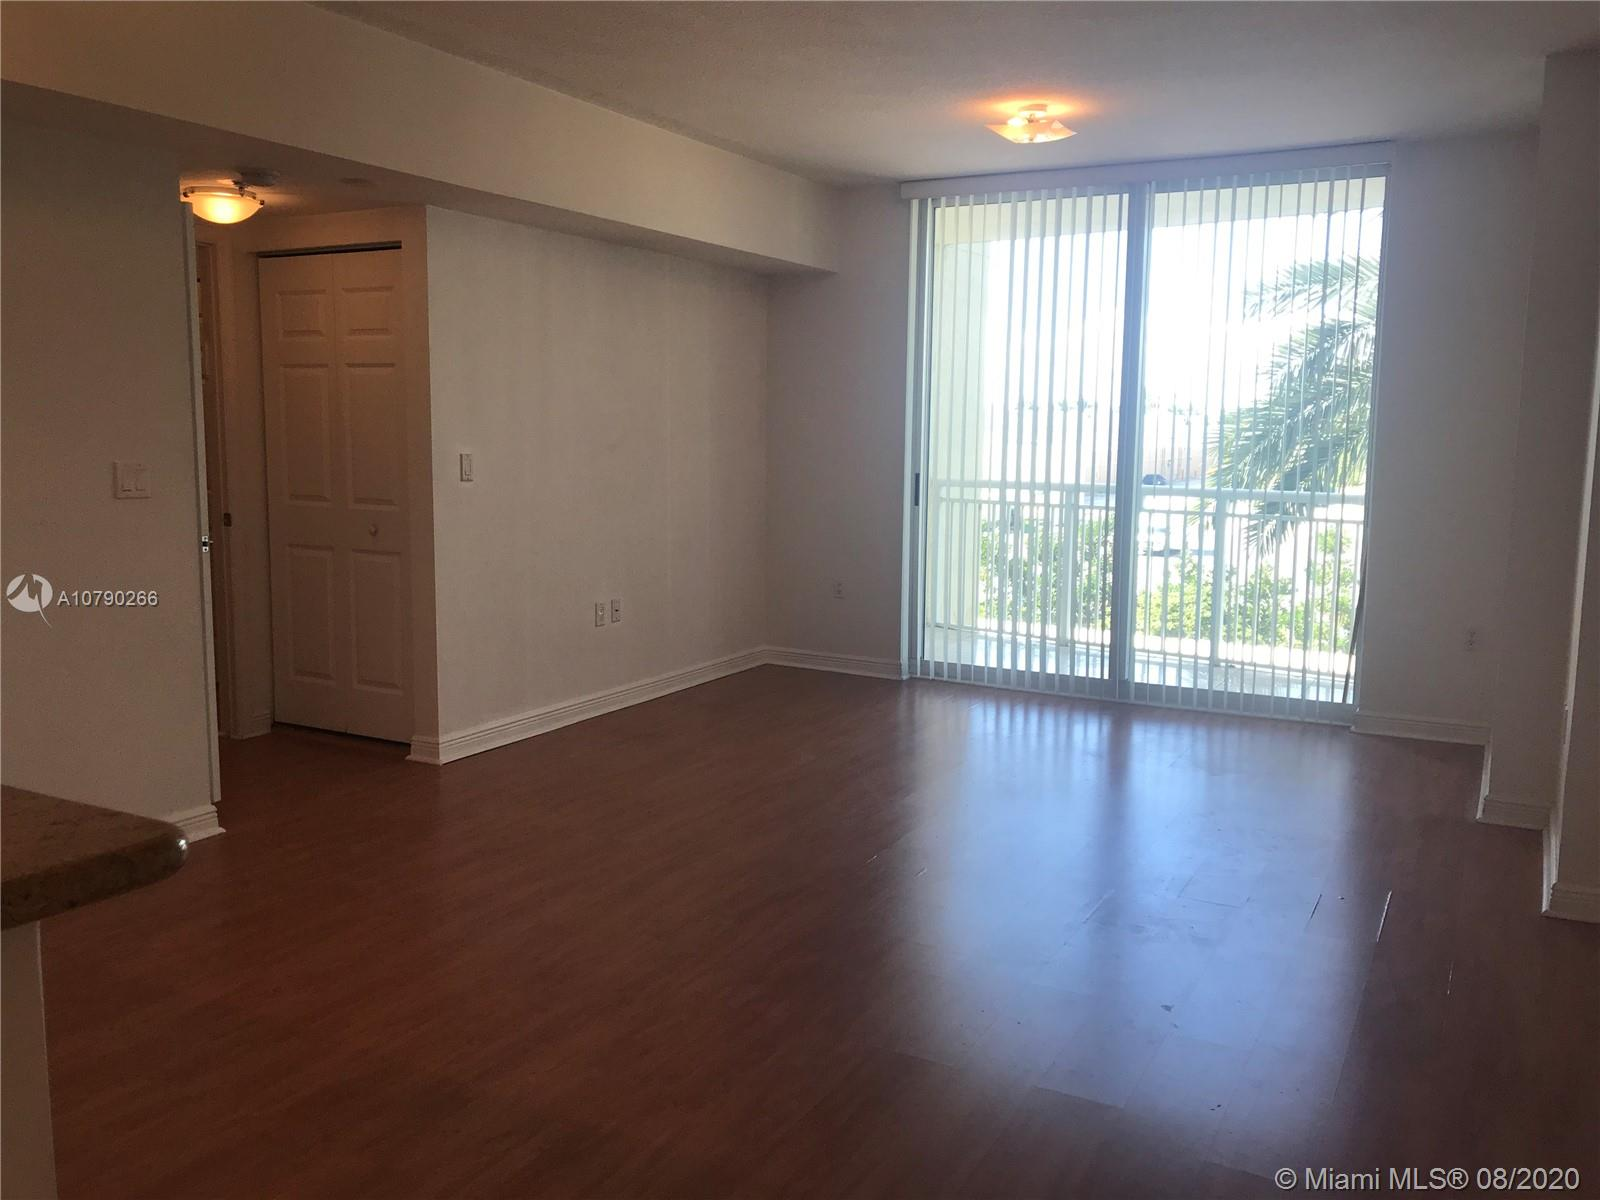 Photo of 1745 Hallandale Beach Blvd #201W, Hallandale, Florida, 33009 -